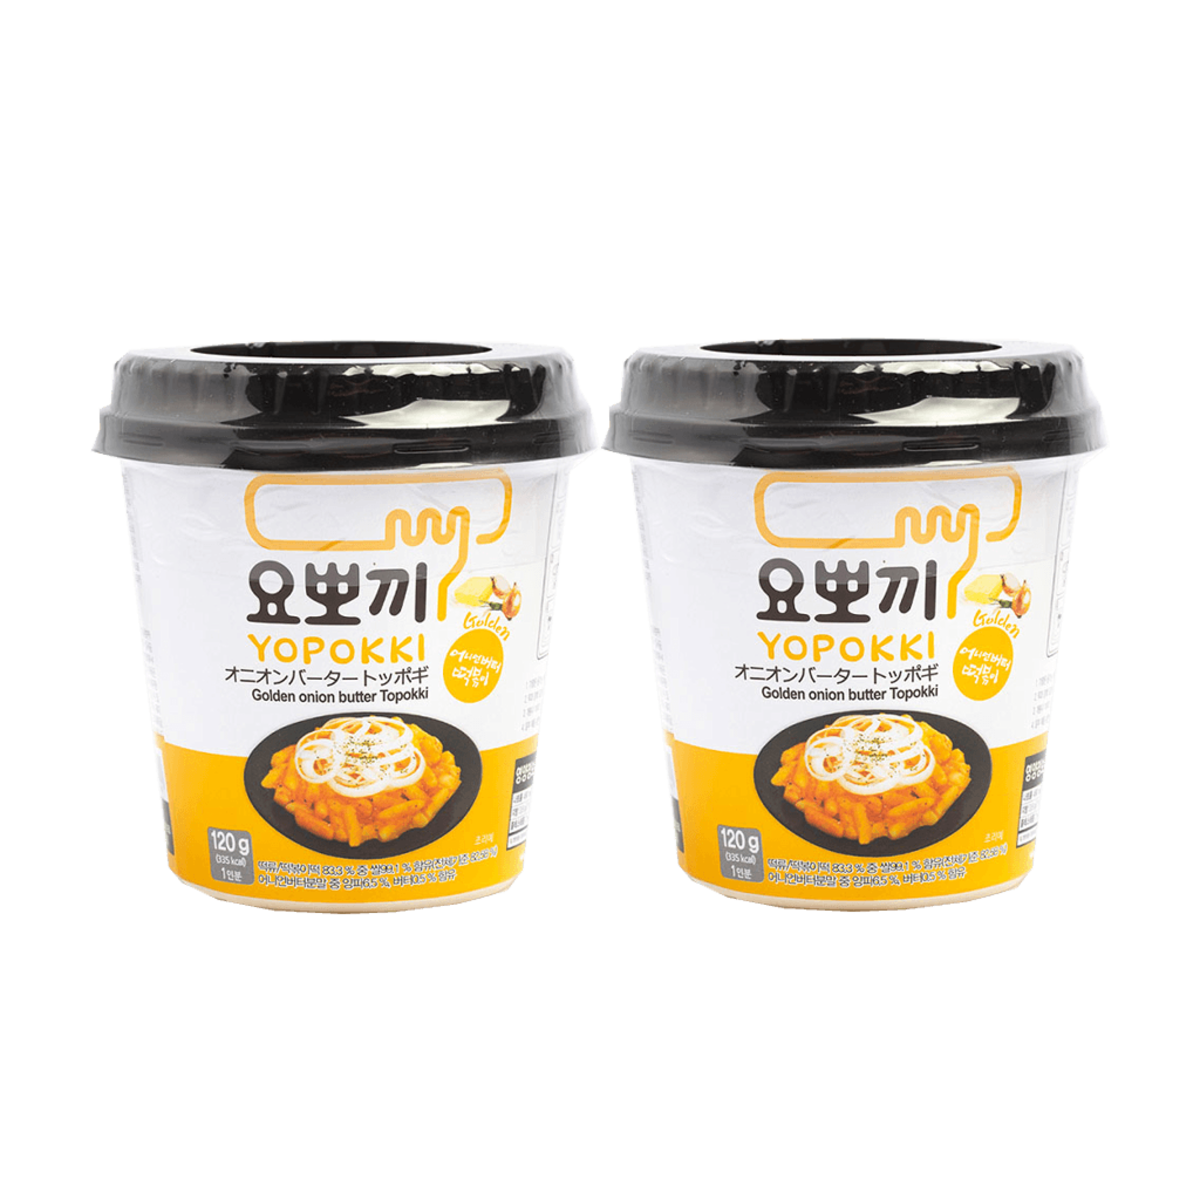 Korea Yopokki Onion Butter Flavored Rice Cake 120g x 2